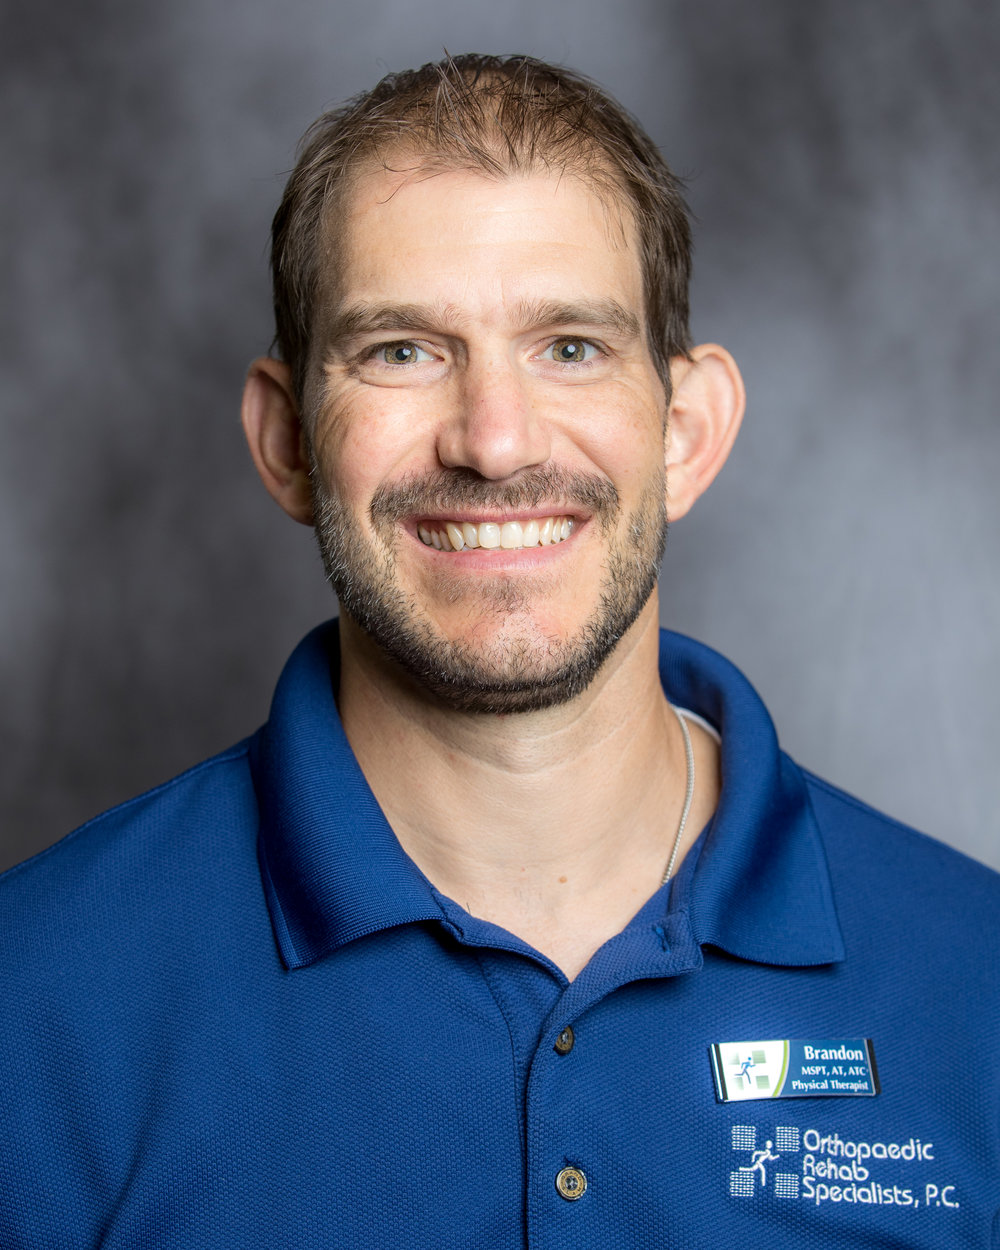 BRANDON KLUMP- FOOT, ANKLE AND RUNNING CENTER CLINICAL DIRECTOR